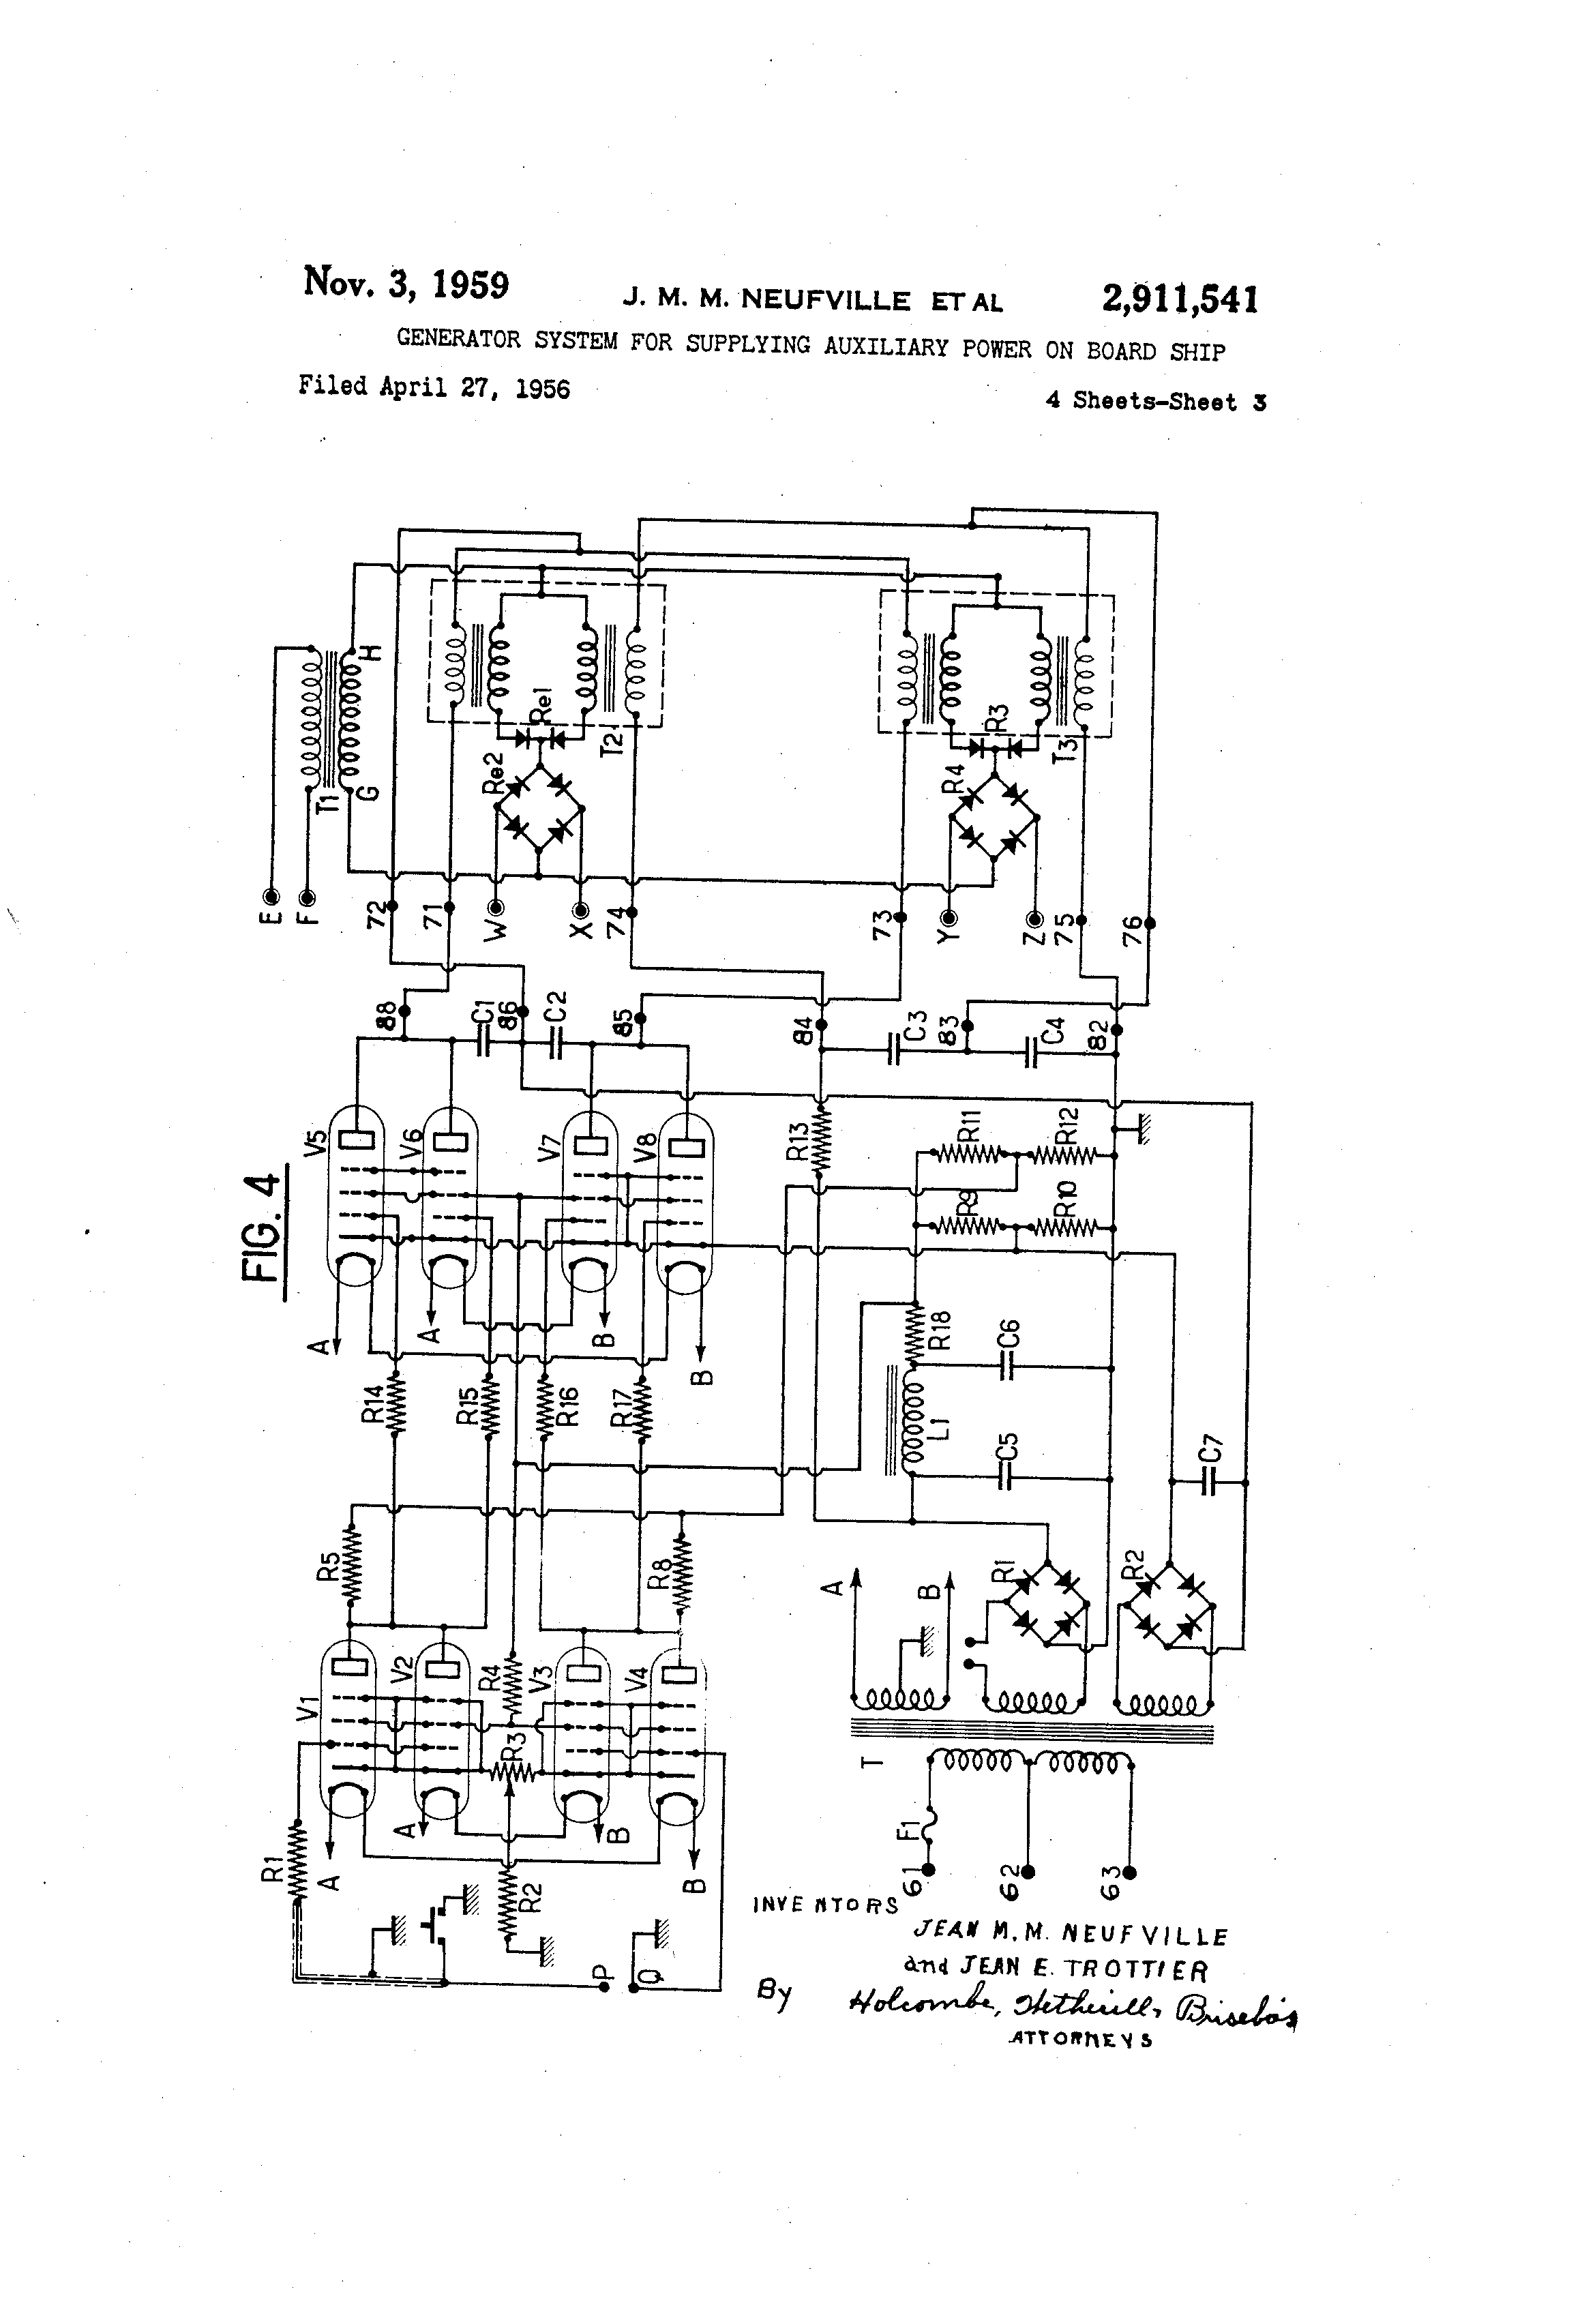 leroy somer alternator wiring diagram wiring diagrams and patent us2911541 generator system for supplying auxiliary power patent us8013578 alternator google patenten wiring diagram